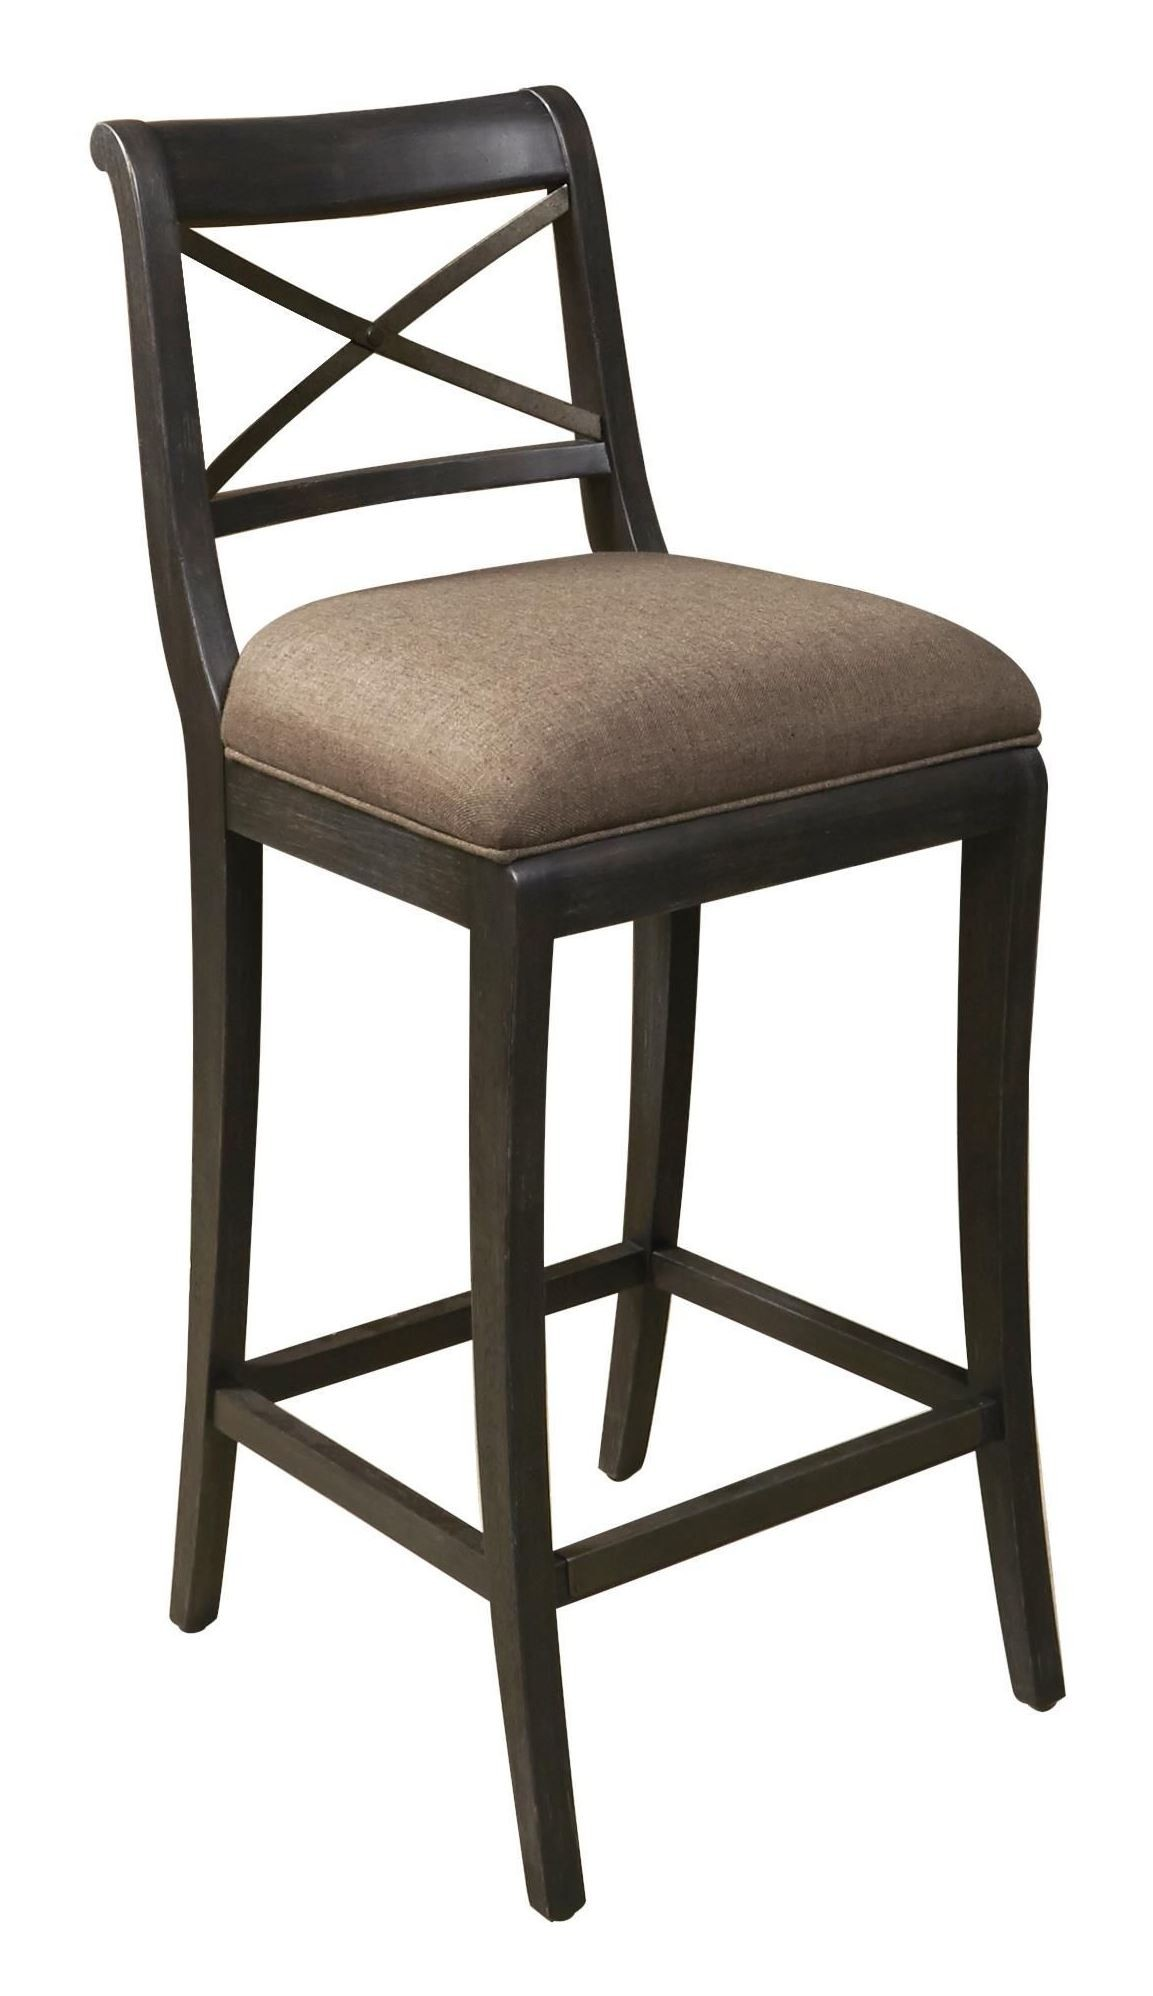 Vintage Tempo Unique Charcoal Bar Stool From Pulaski